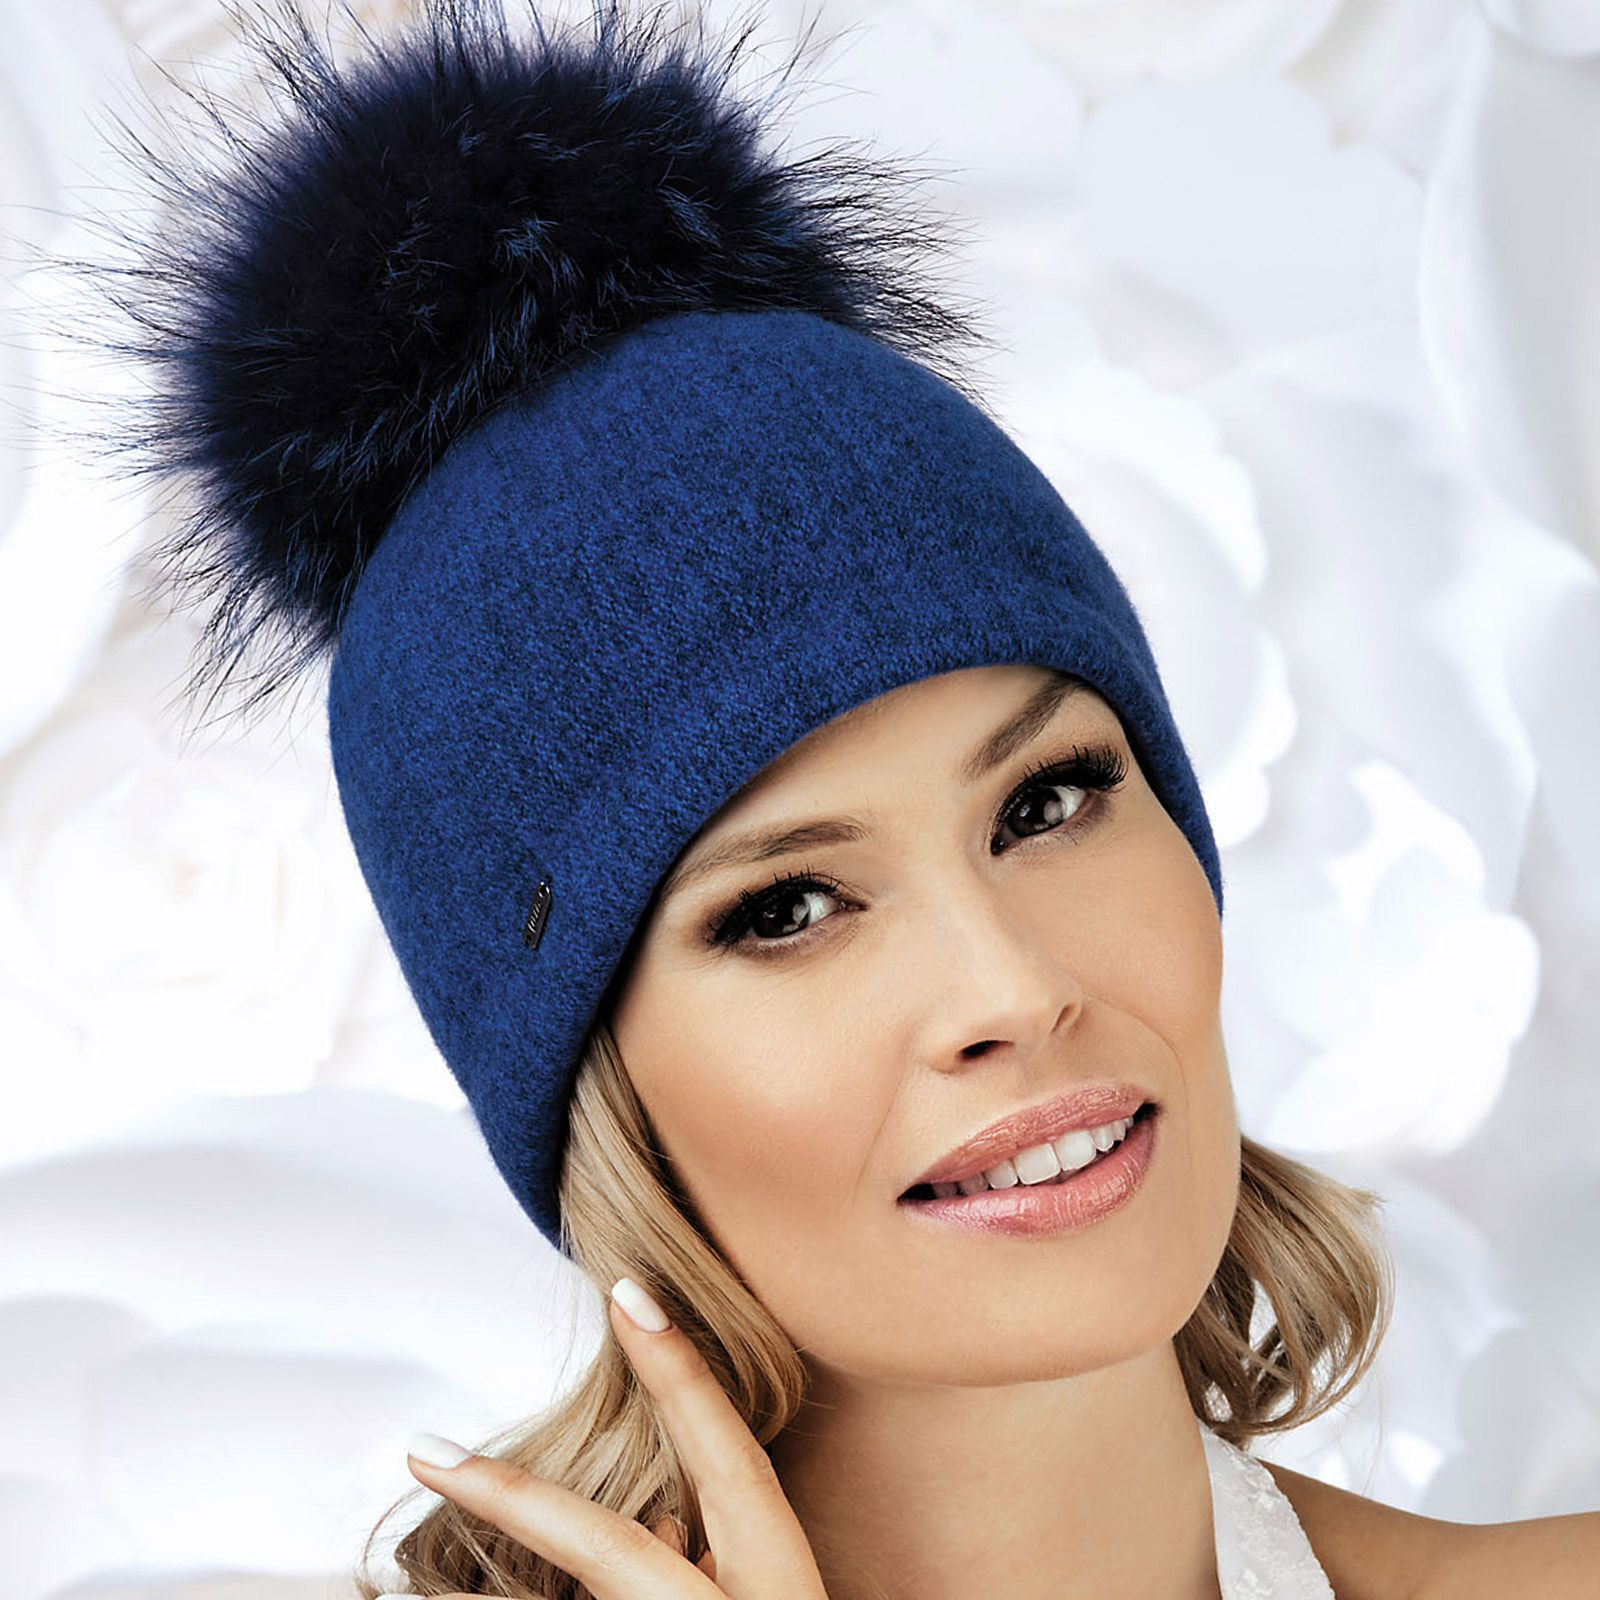 b5114c17efc For lovers of the pom pom hat